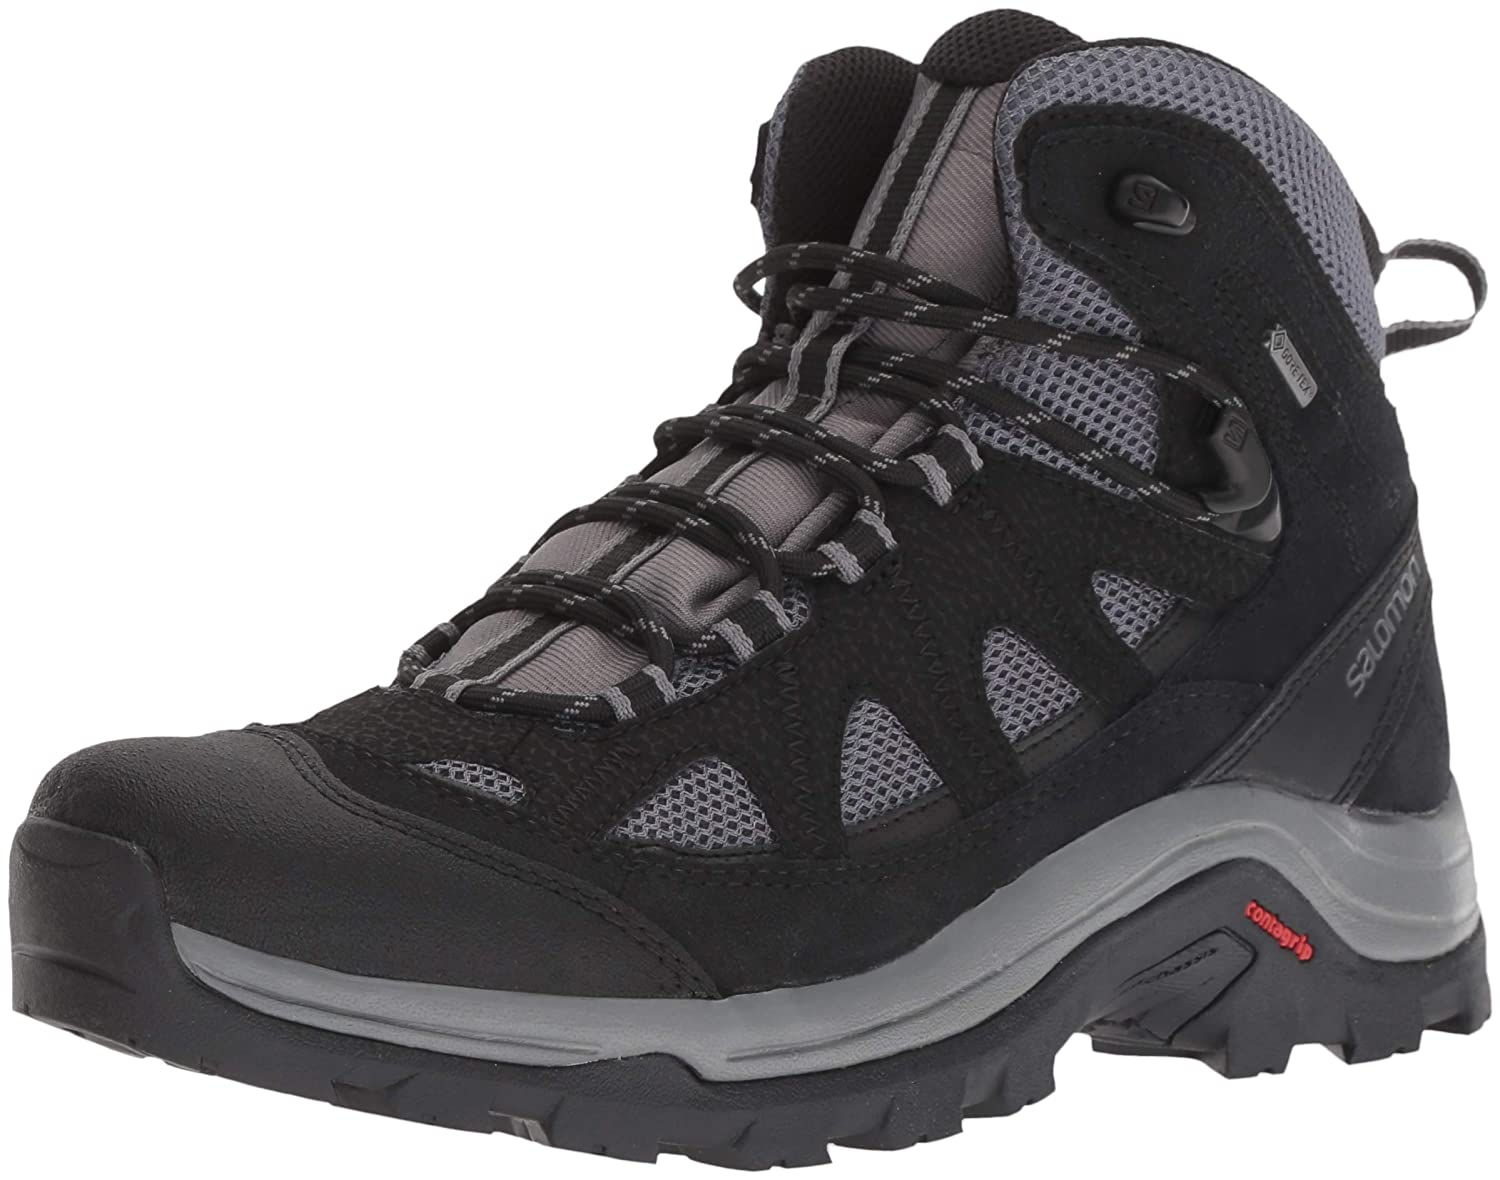 Salomon Authentic LTR GTX Men's Waterproof Boots